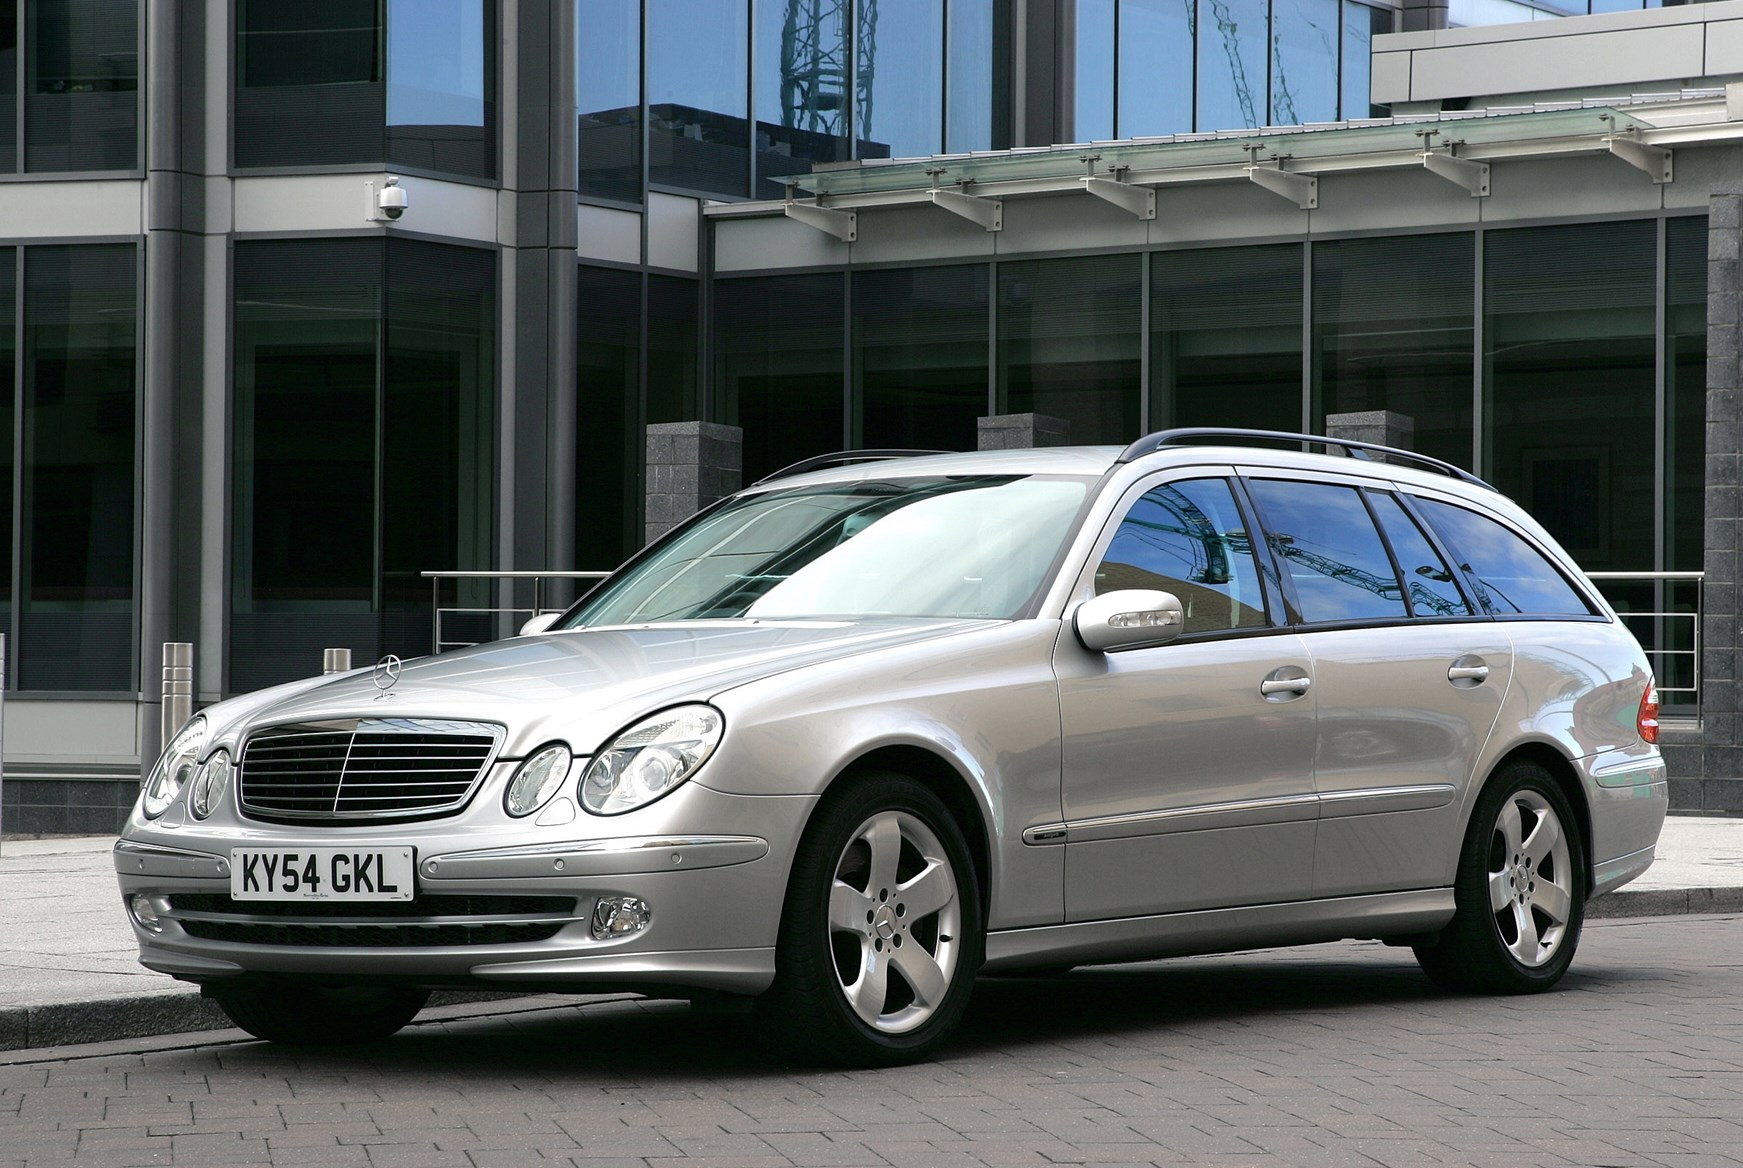 E class mercedes review 2008 future cars release date for How much is mercedes benz